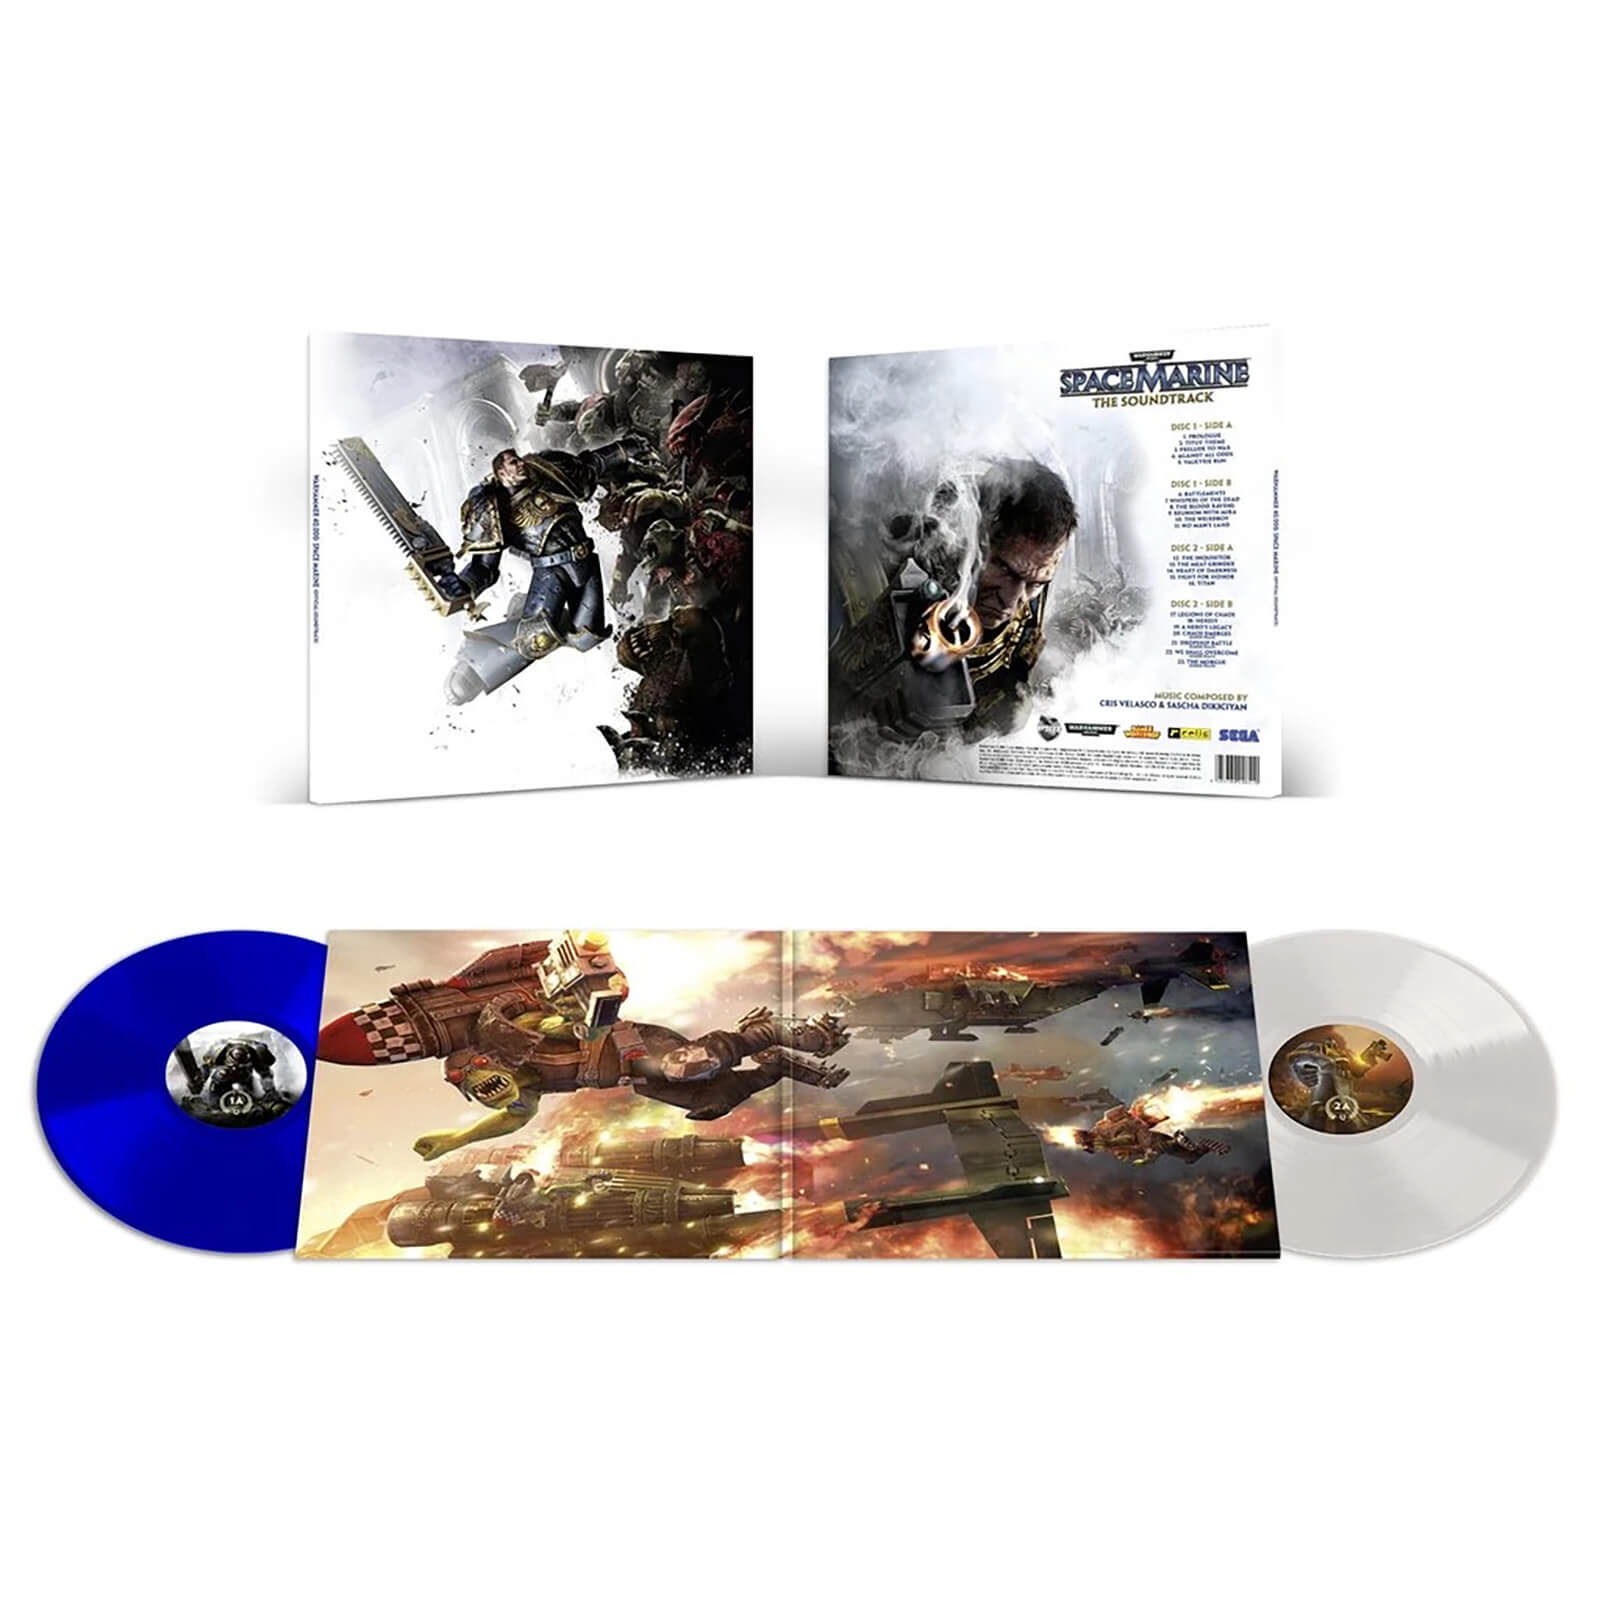 Laced Records - Warhammer: Space Marine (Original Soundtrack) 2xLP (White and Blue)